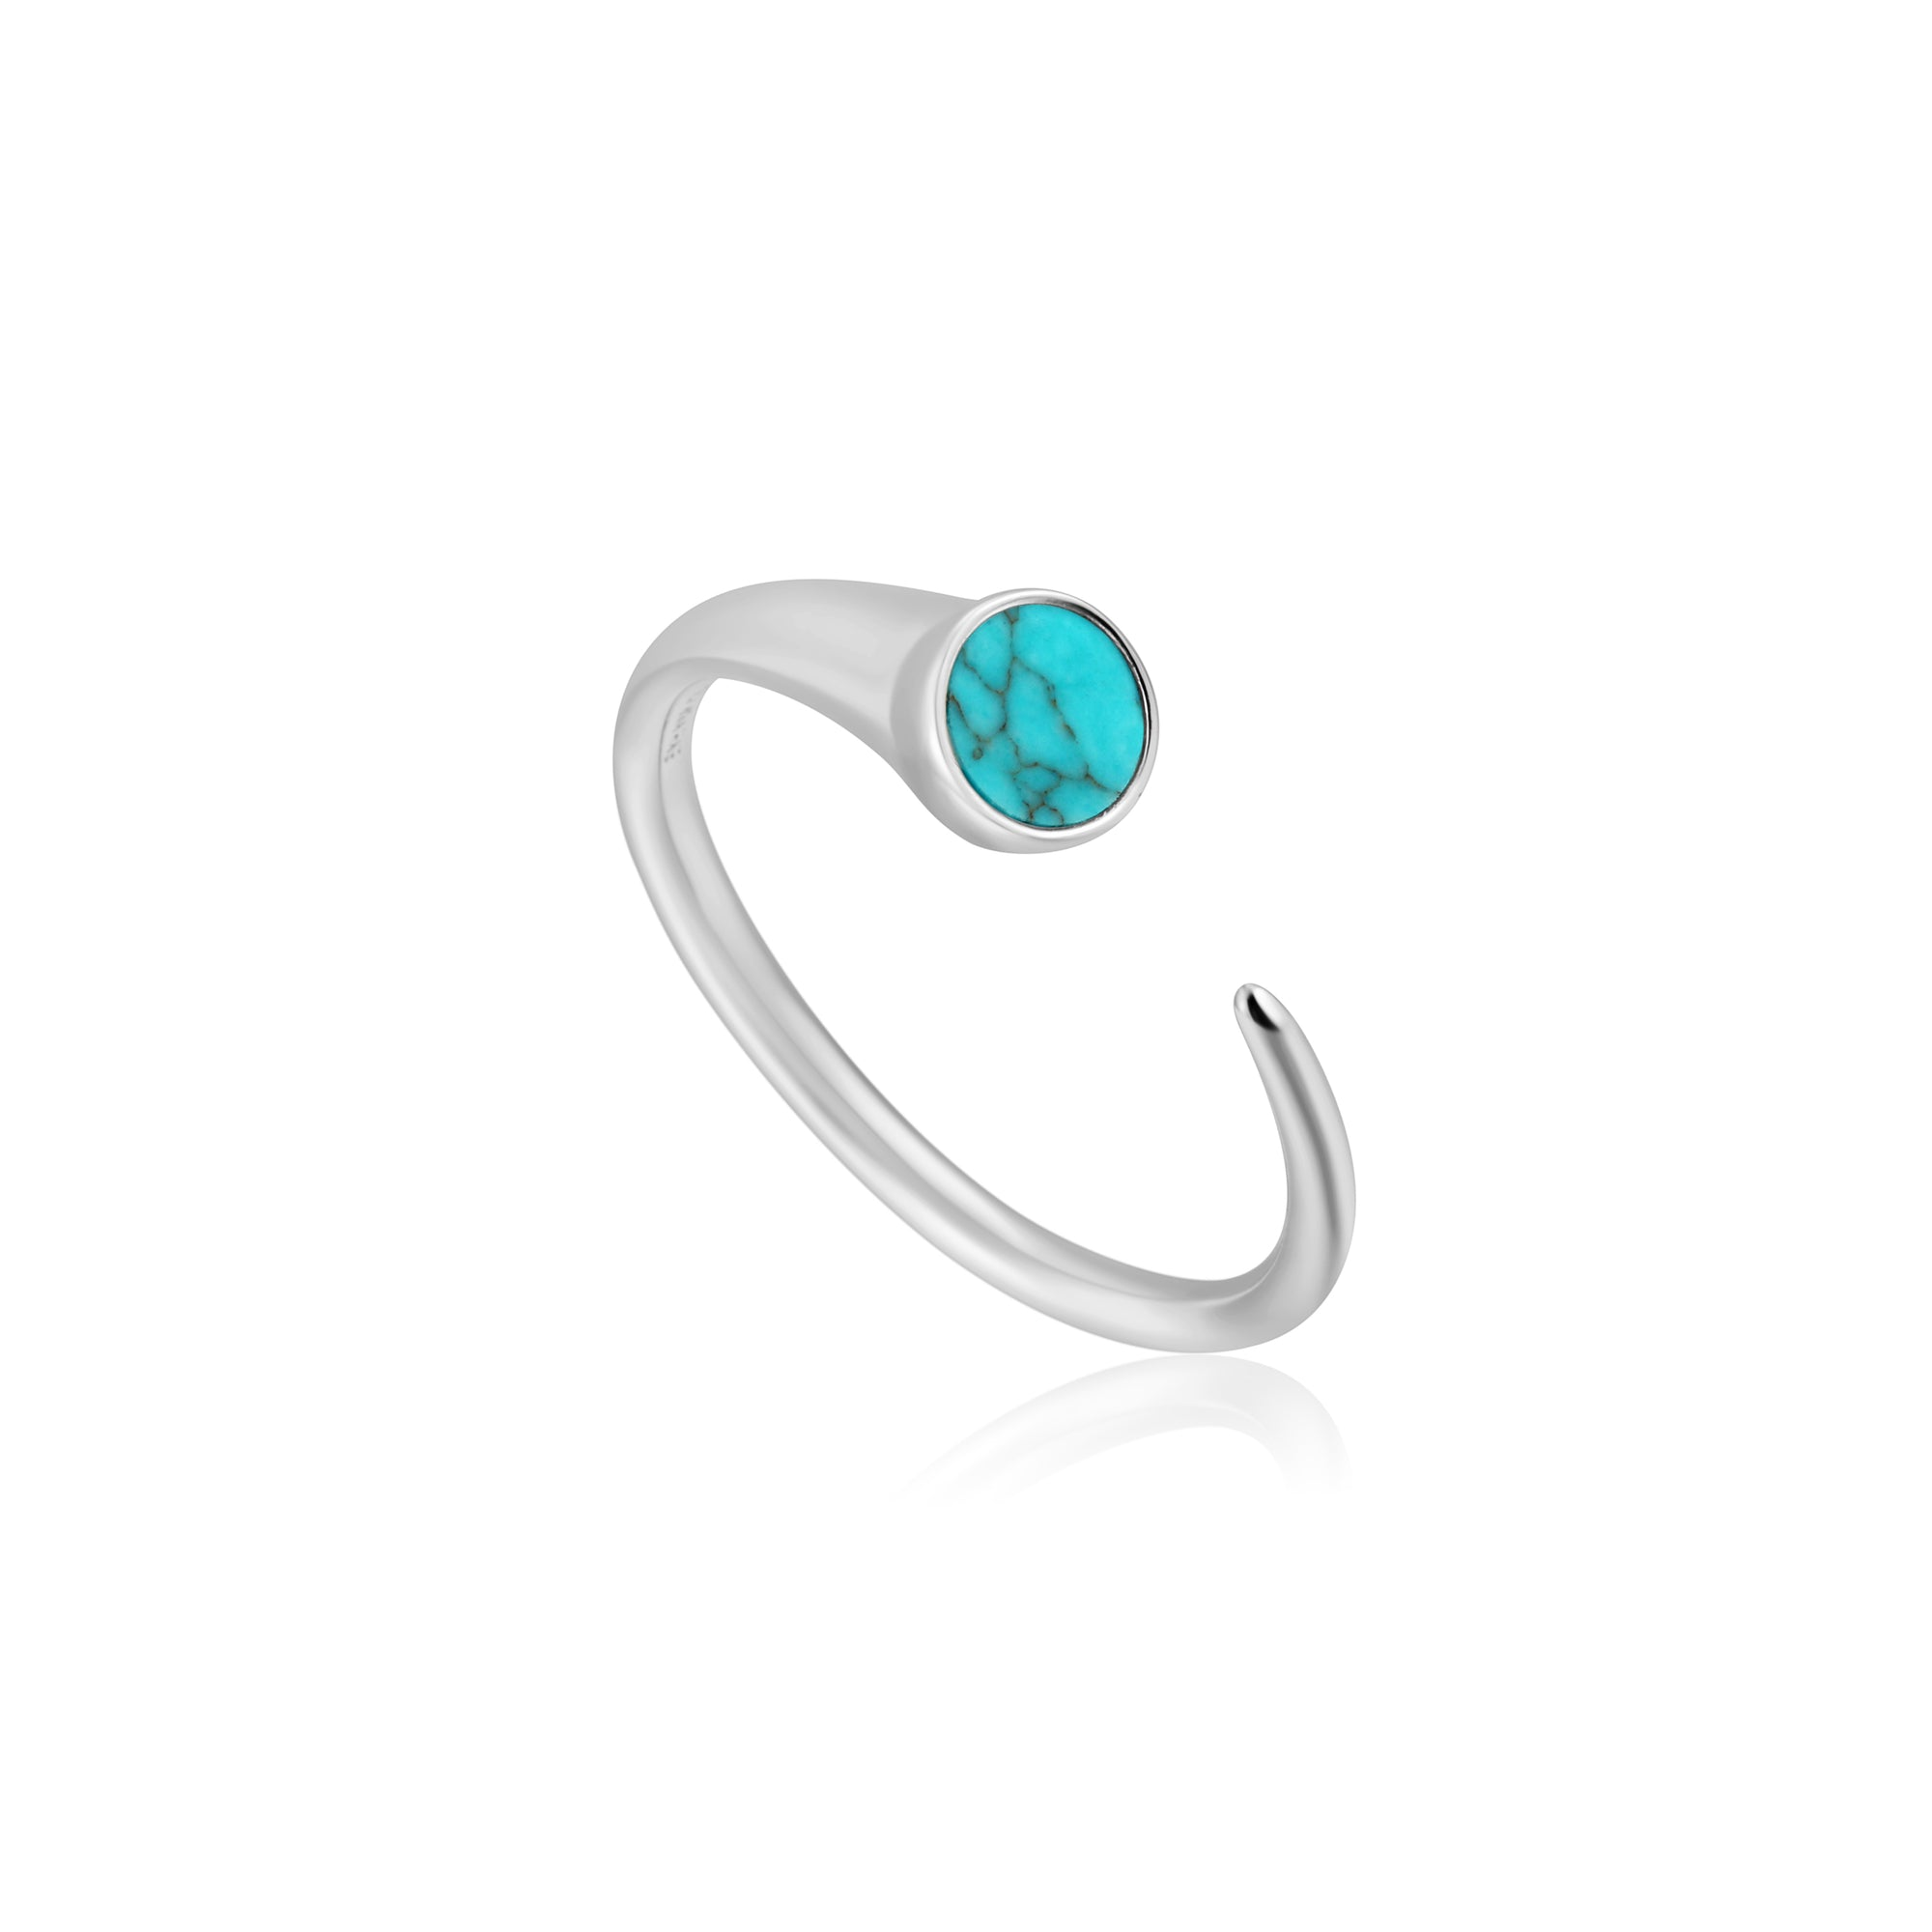 TURQUOISE CLAW RING